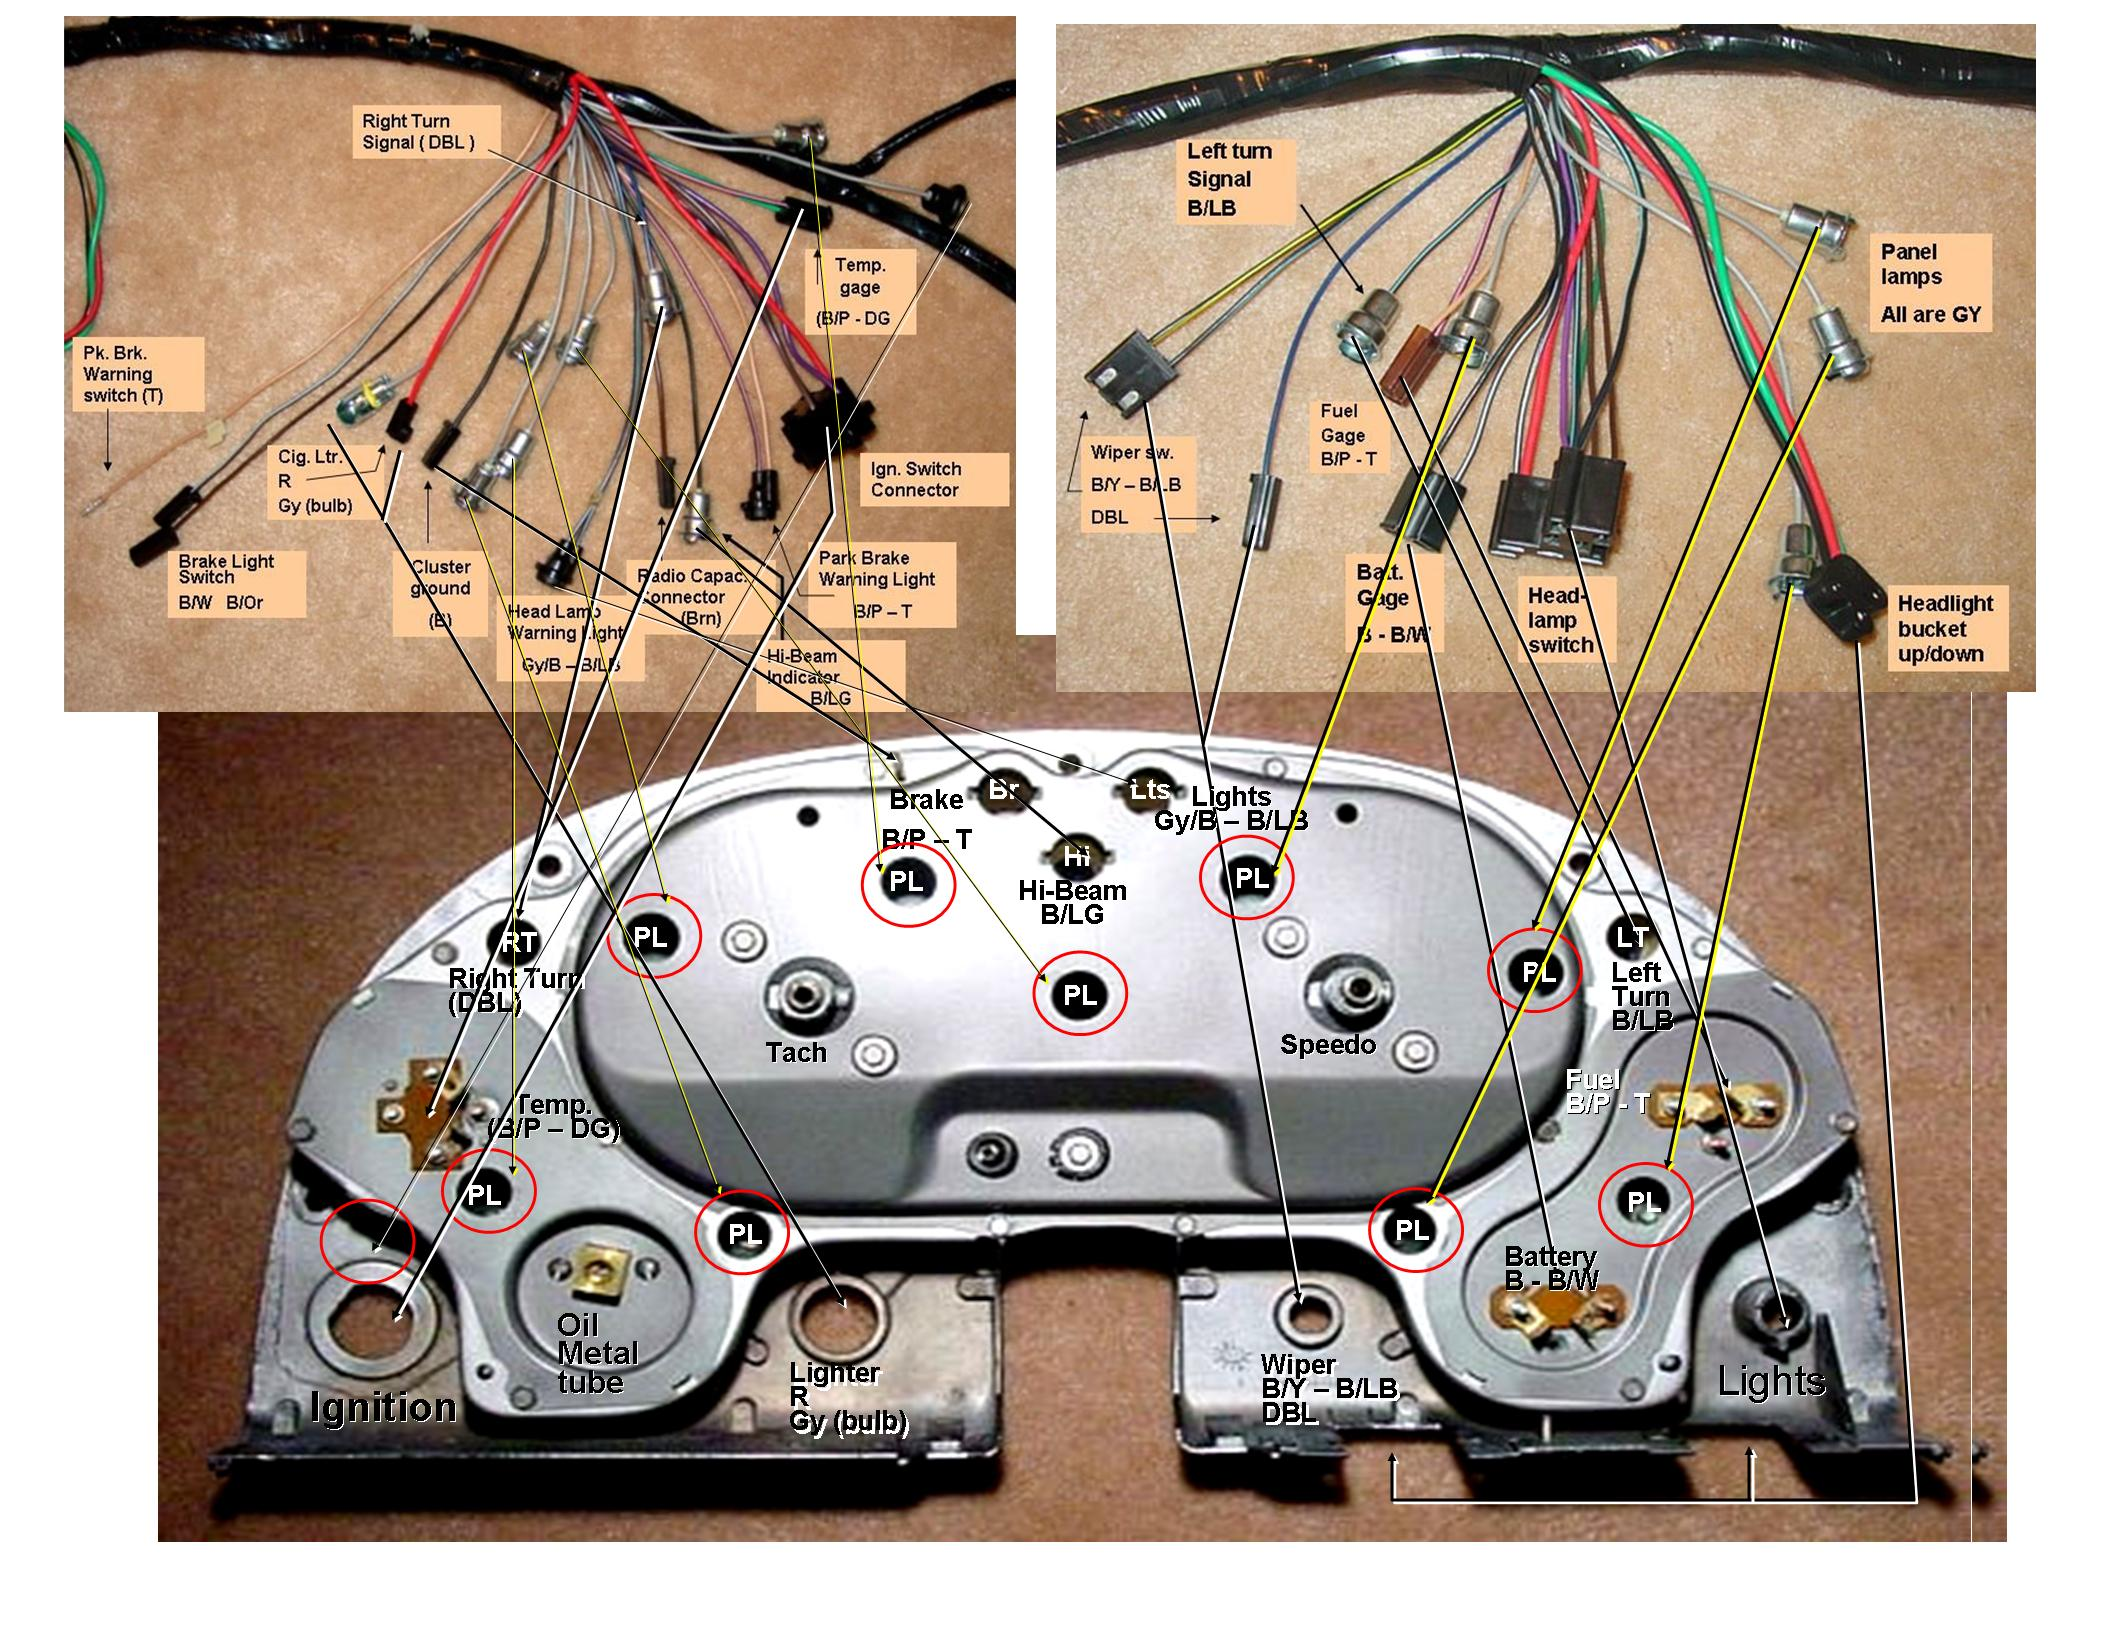 1966 corvette ignition wiring diagram johnson outboard motor parts body off restoration of 1964 coupe  part 29